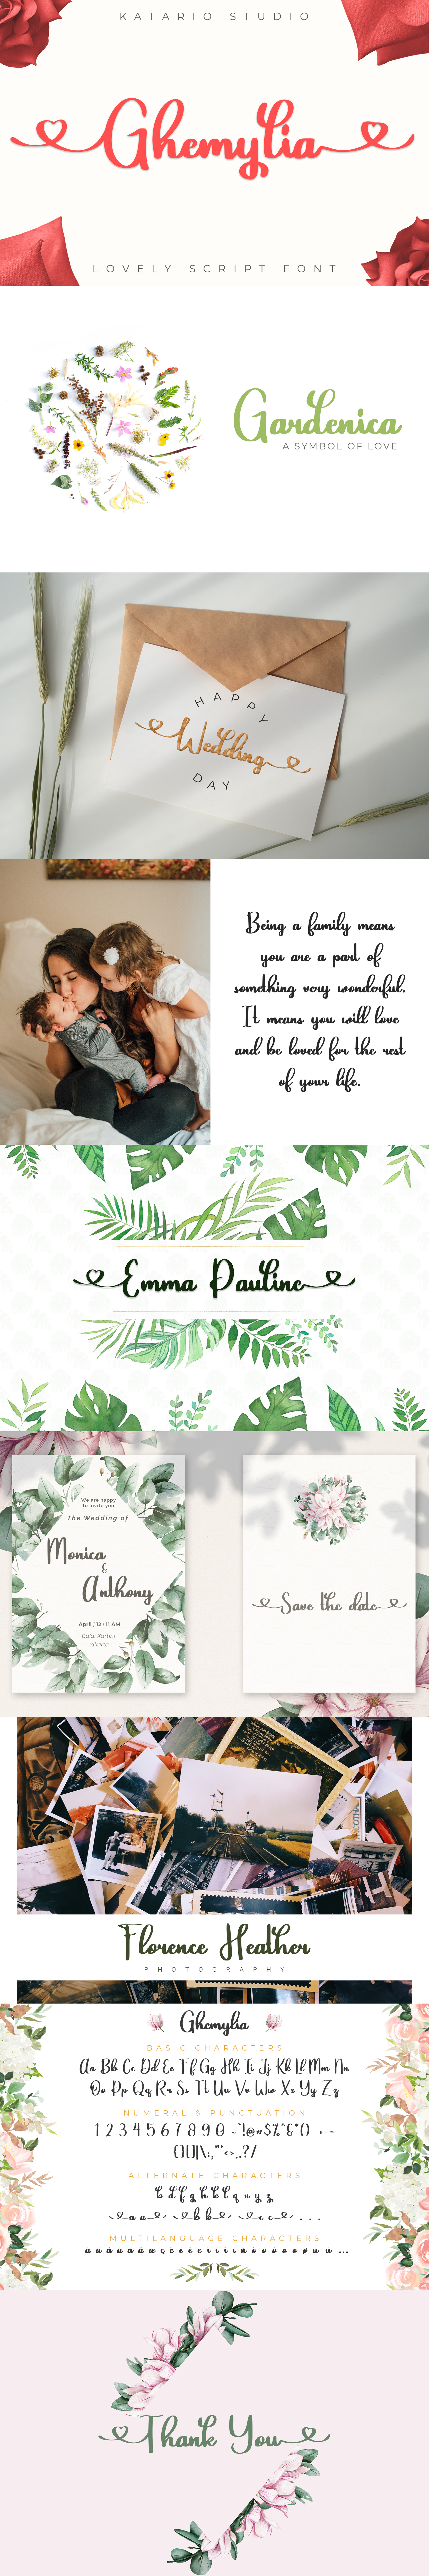 Ghemylia - Lovely Heart Font example image 10